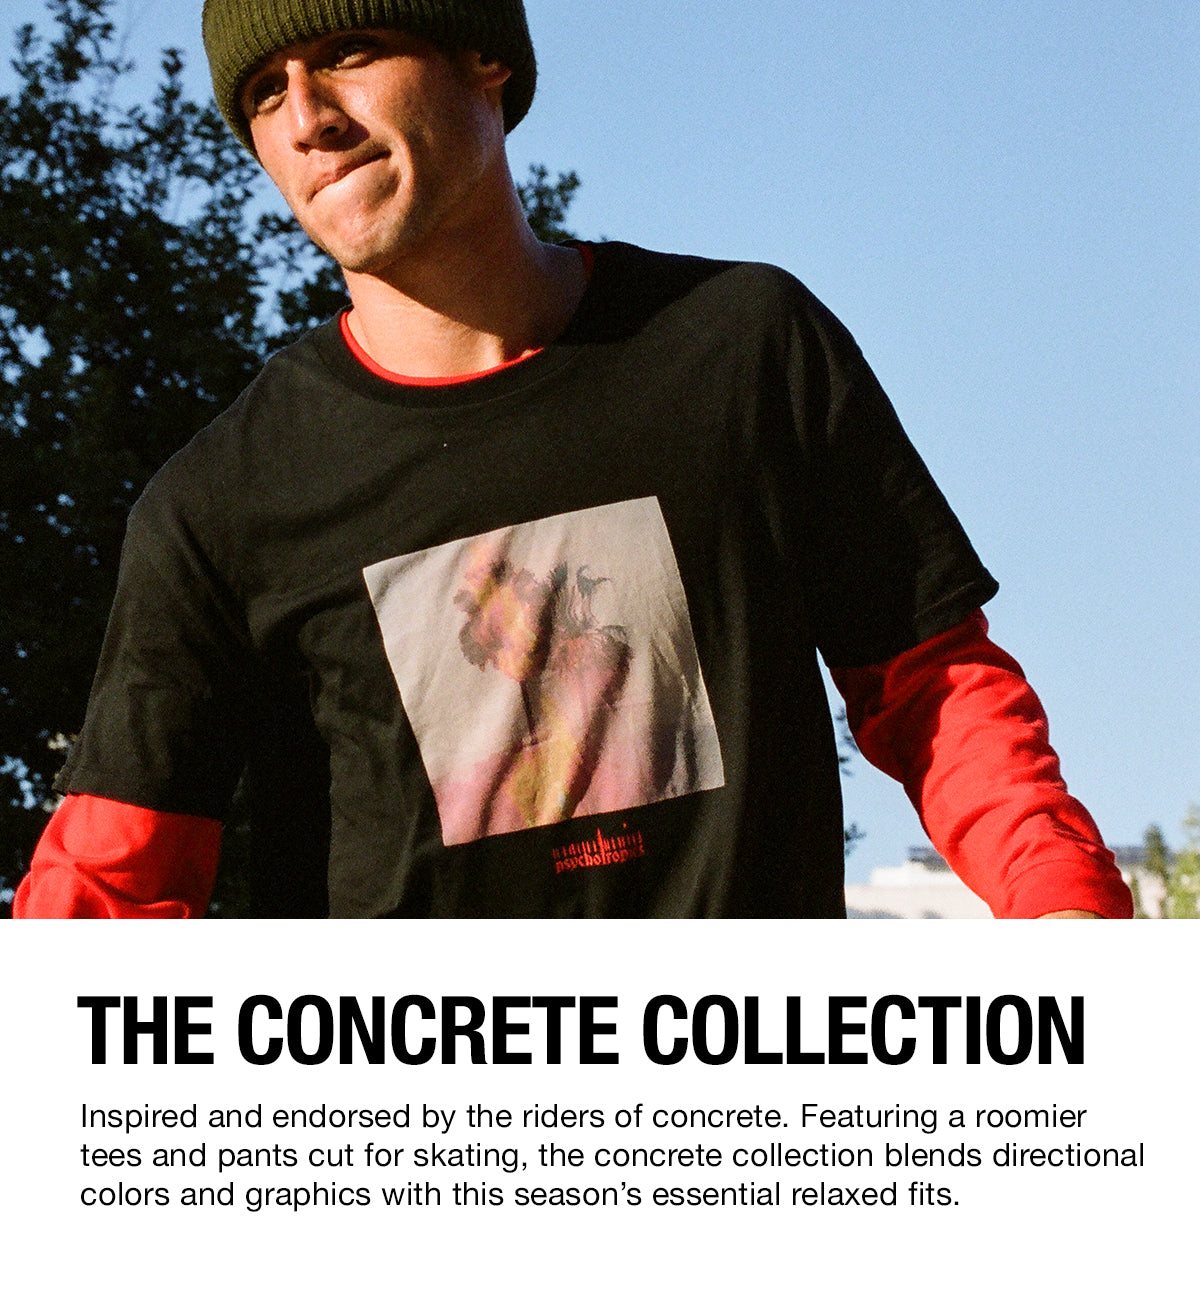 The Concrete Collection